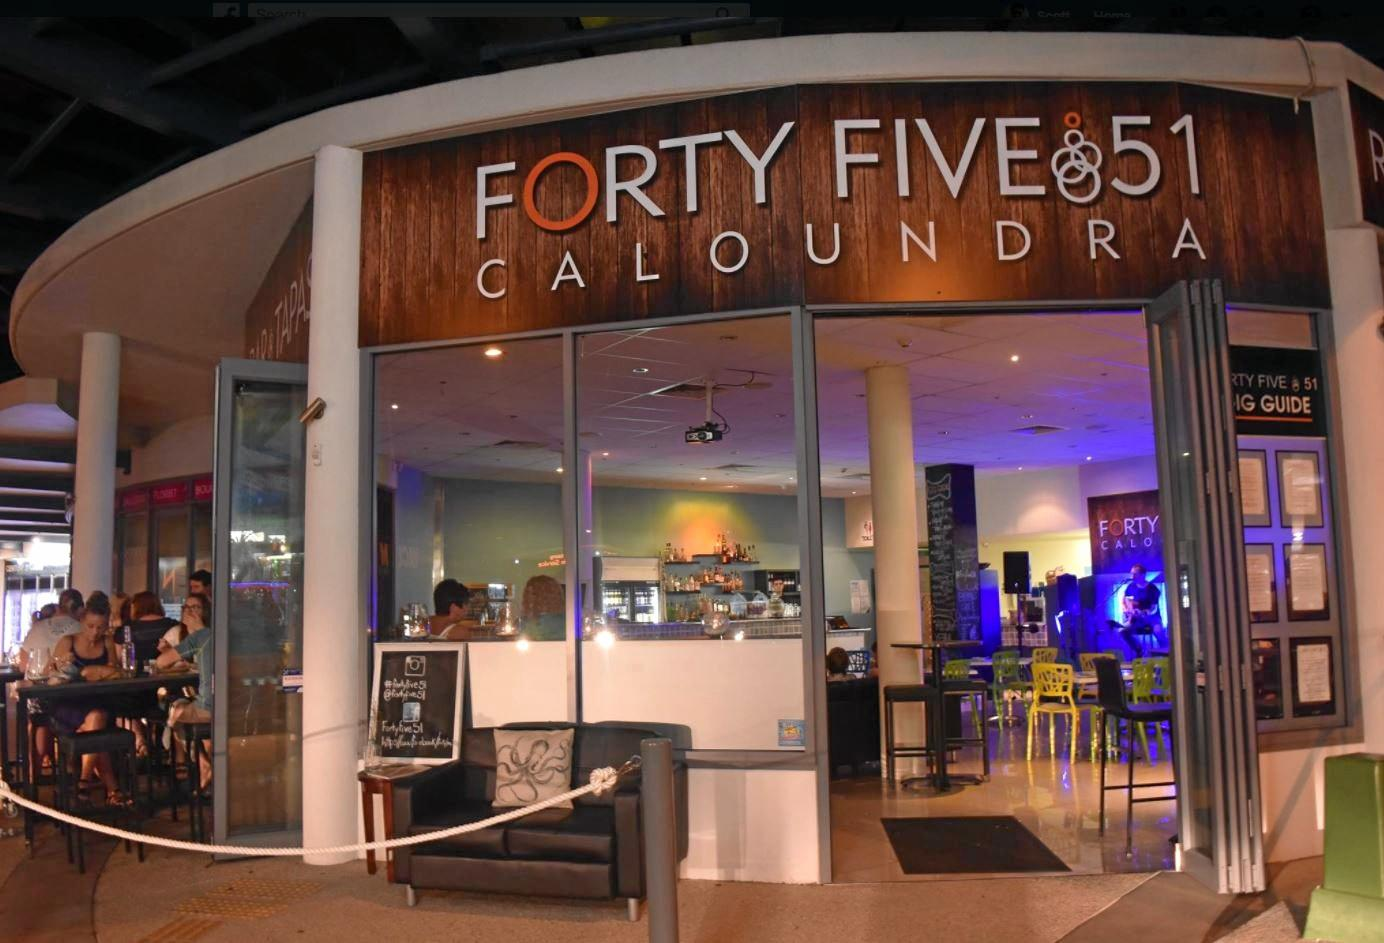 RETURNING: Popular live music bar and restaurant Forty Five 51 Caloundra is reopening in just a few days.